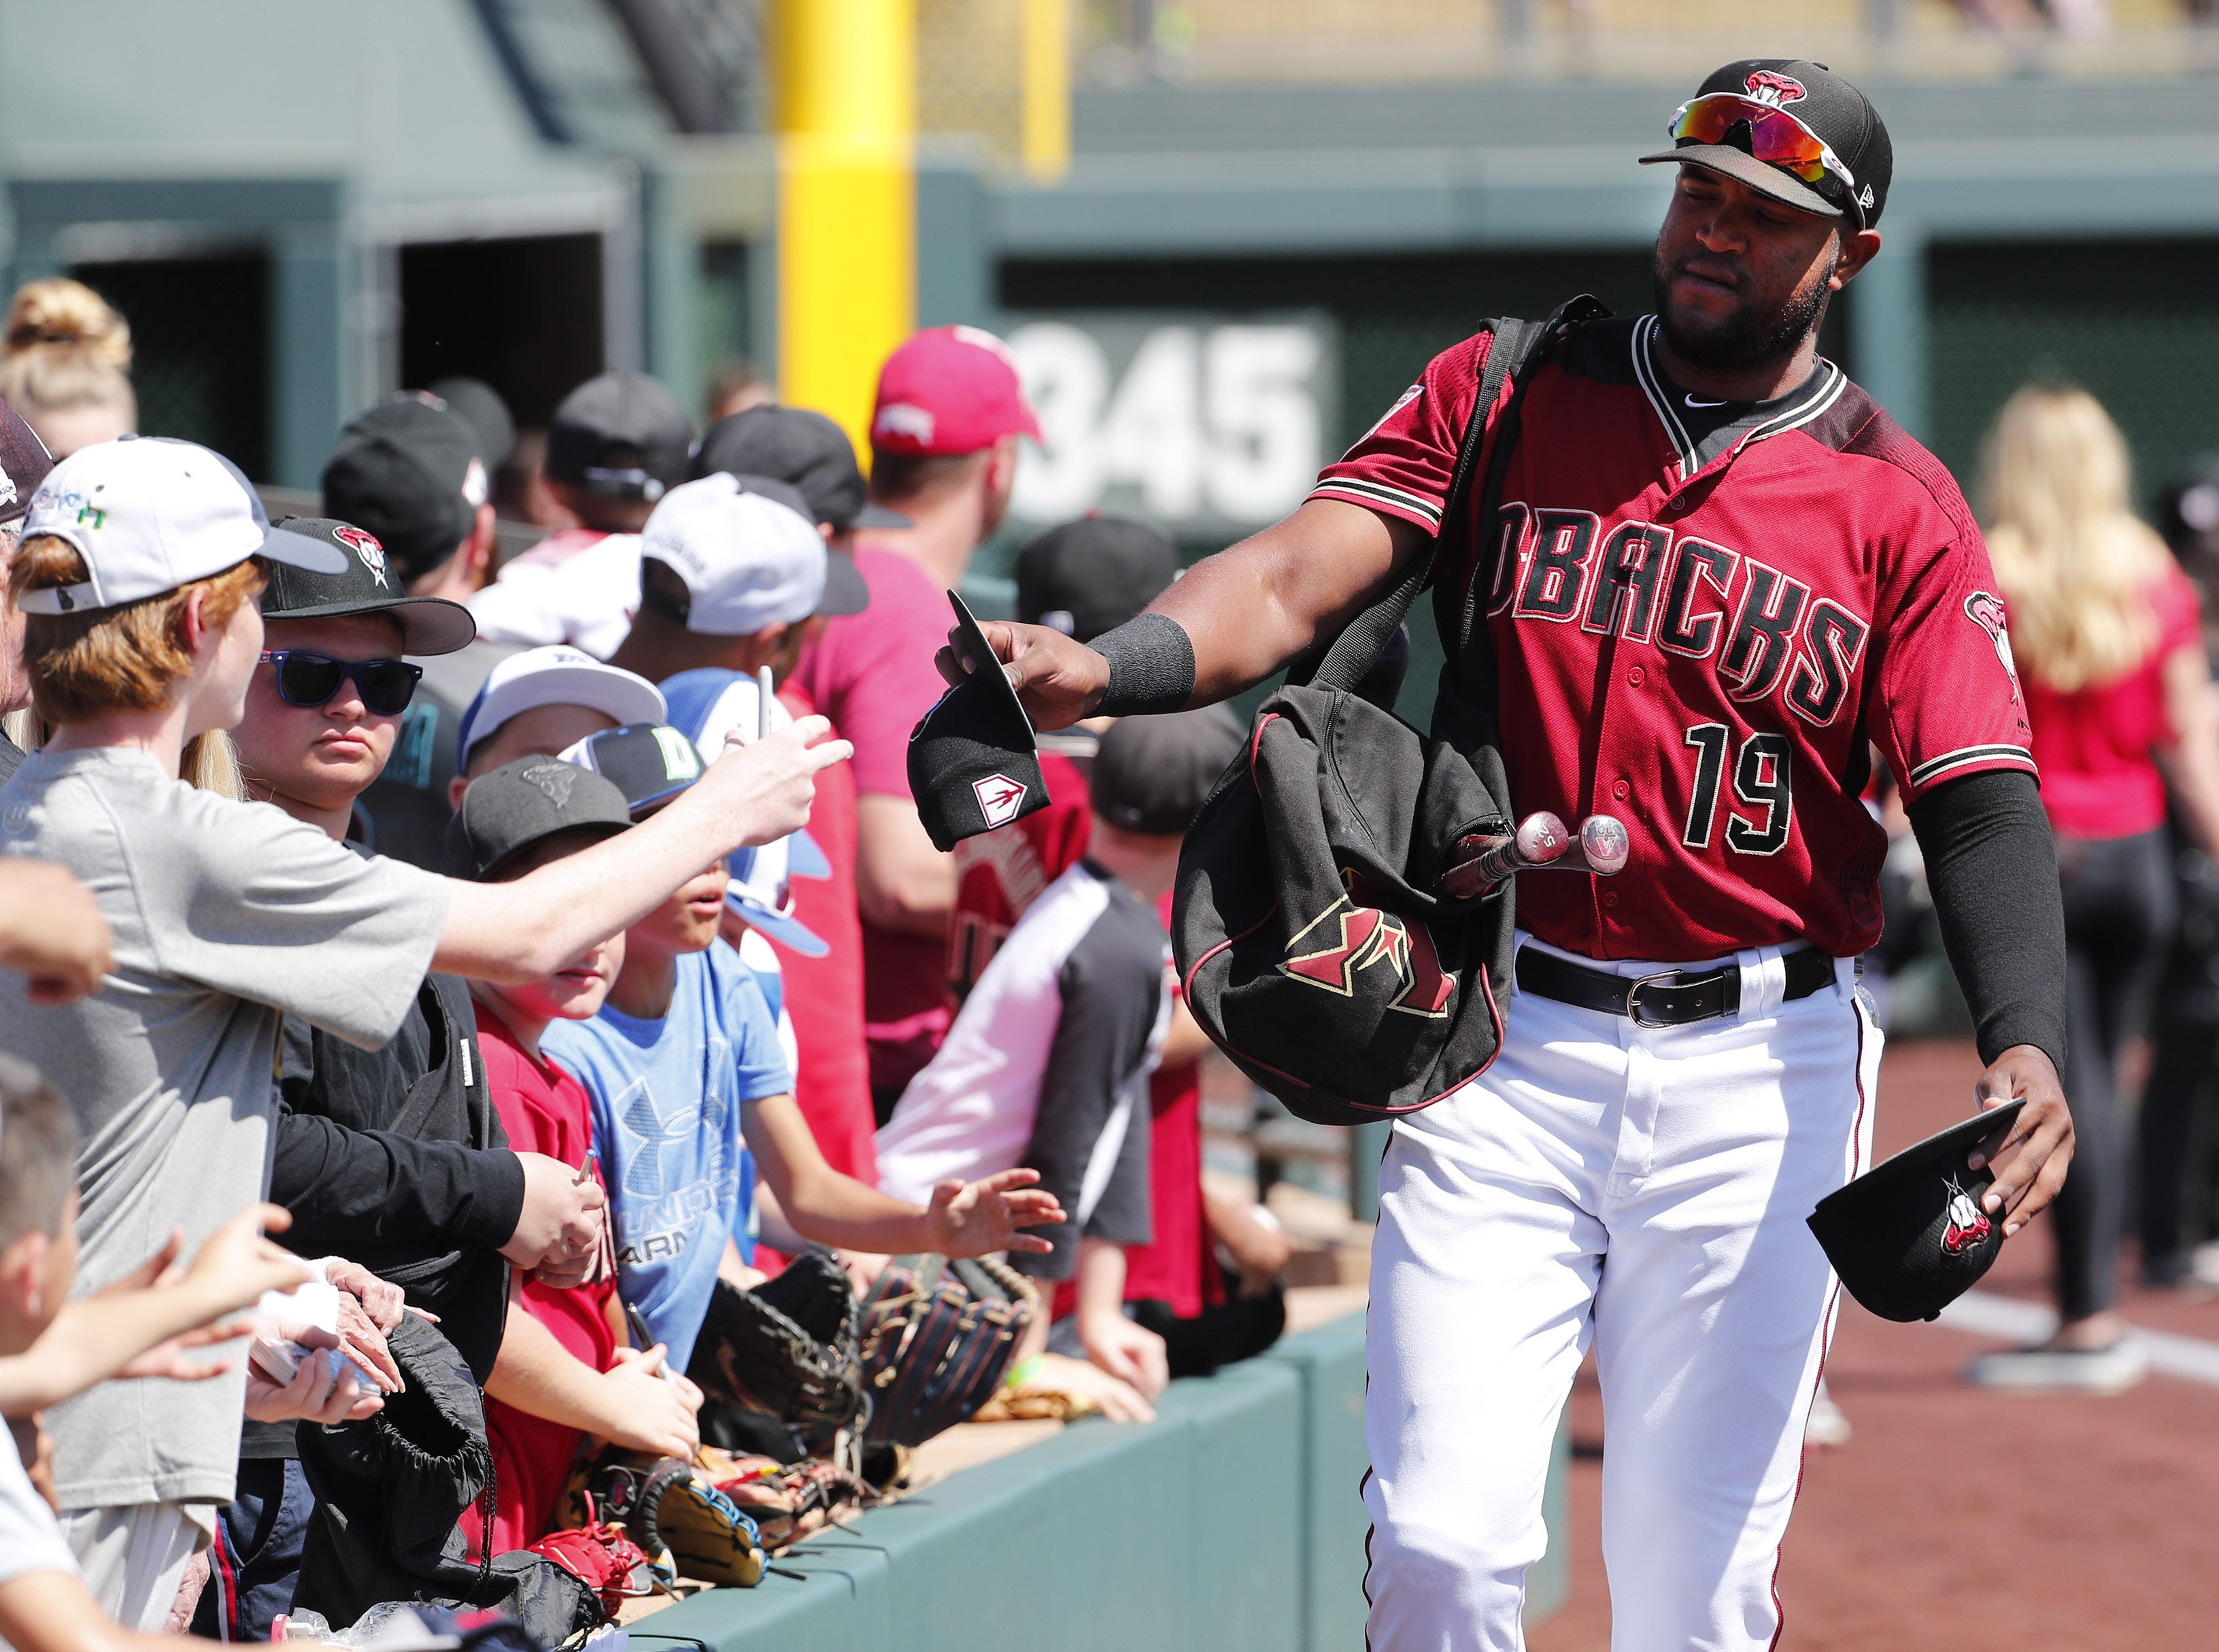 Arizona Diamondbacks center fielder Socrates Brito (19) hands out hats to fans before a spring training game against the Milwaukee Brewers at Salt River Fields at Talking Stick March 24, 2019.